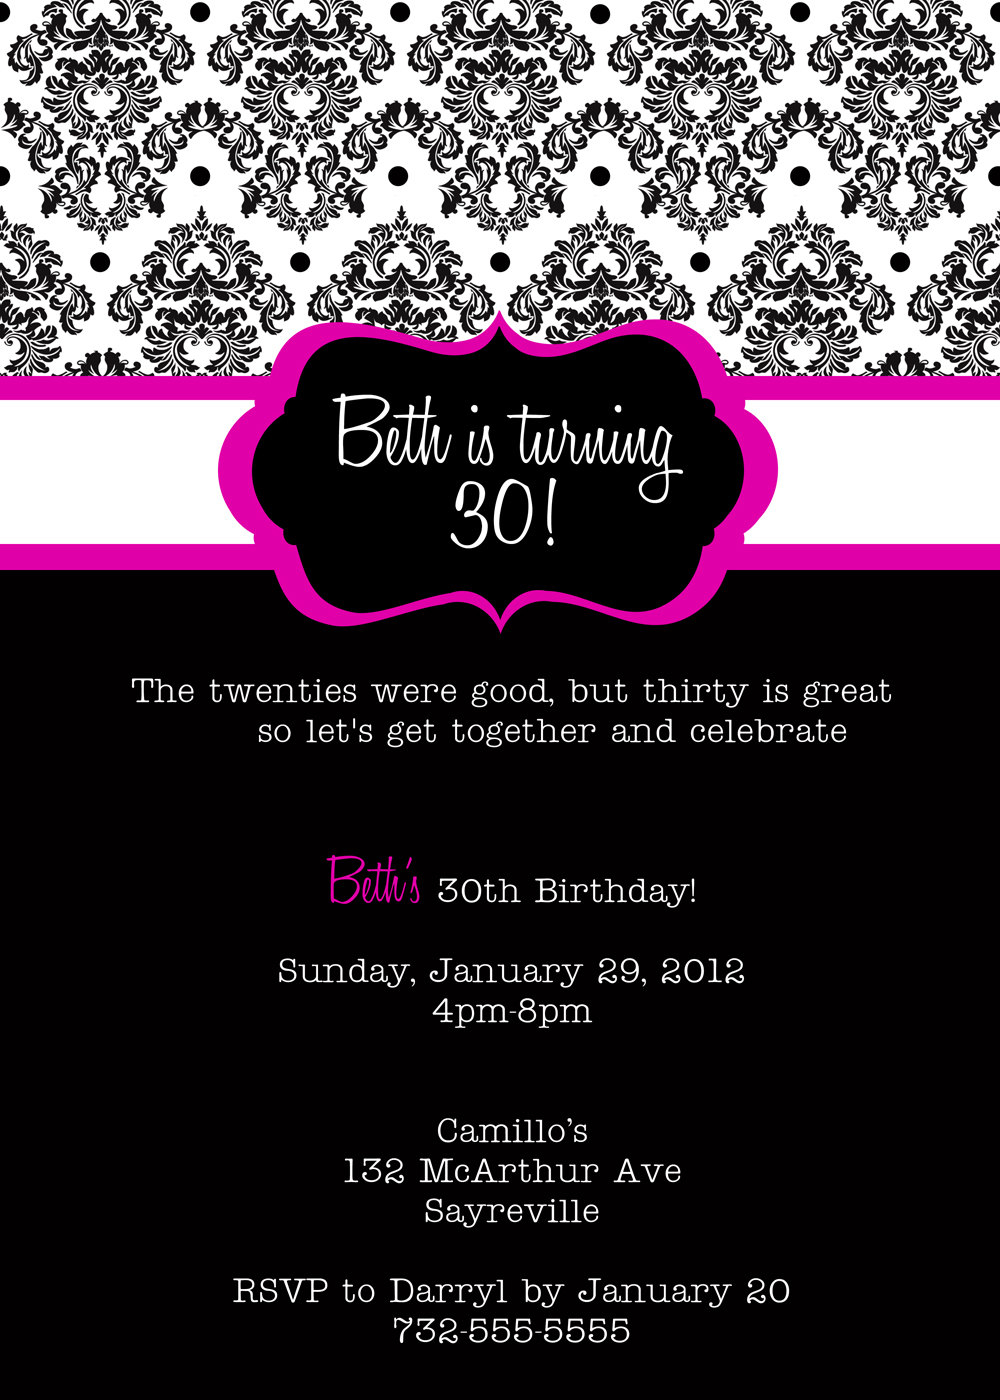 30th birthday invitation designs ; the-30th-birthday-invitations-designs-graceful-appearance-the-egreeting-ecards-com